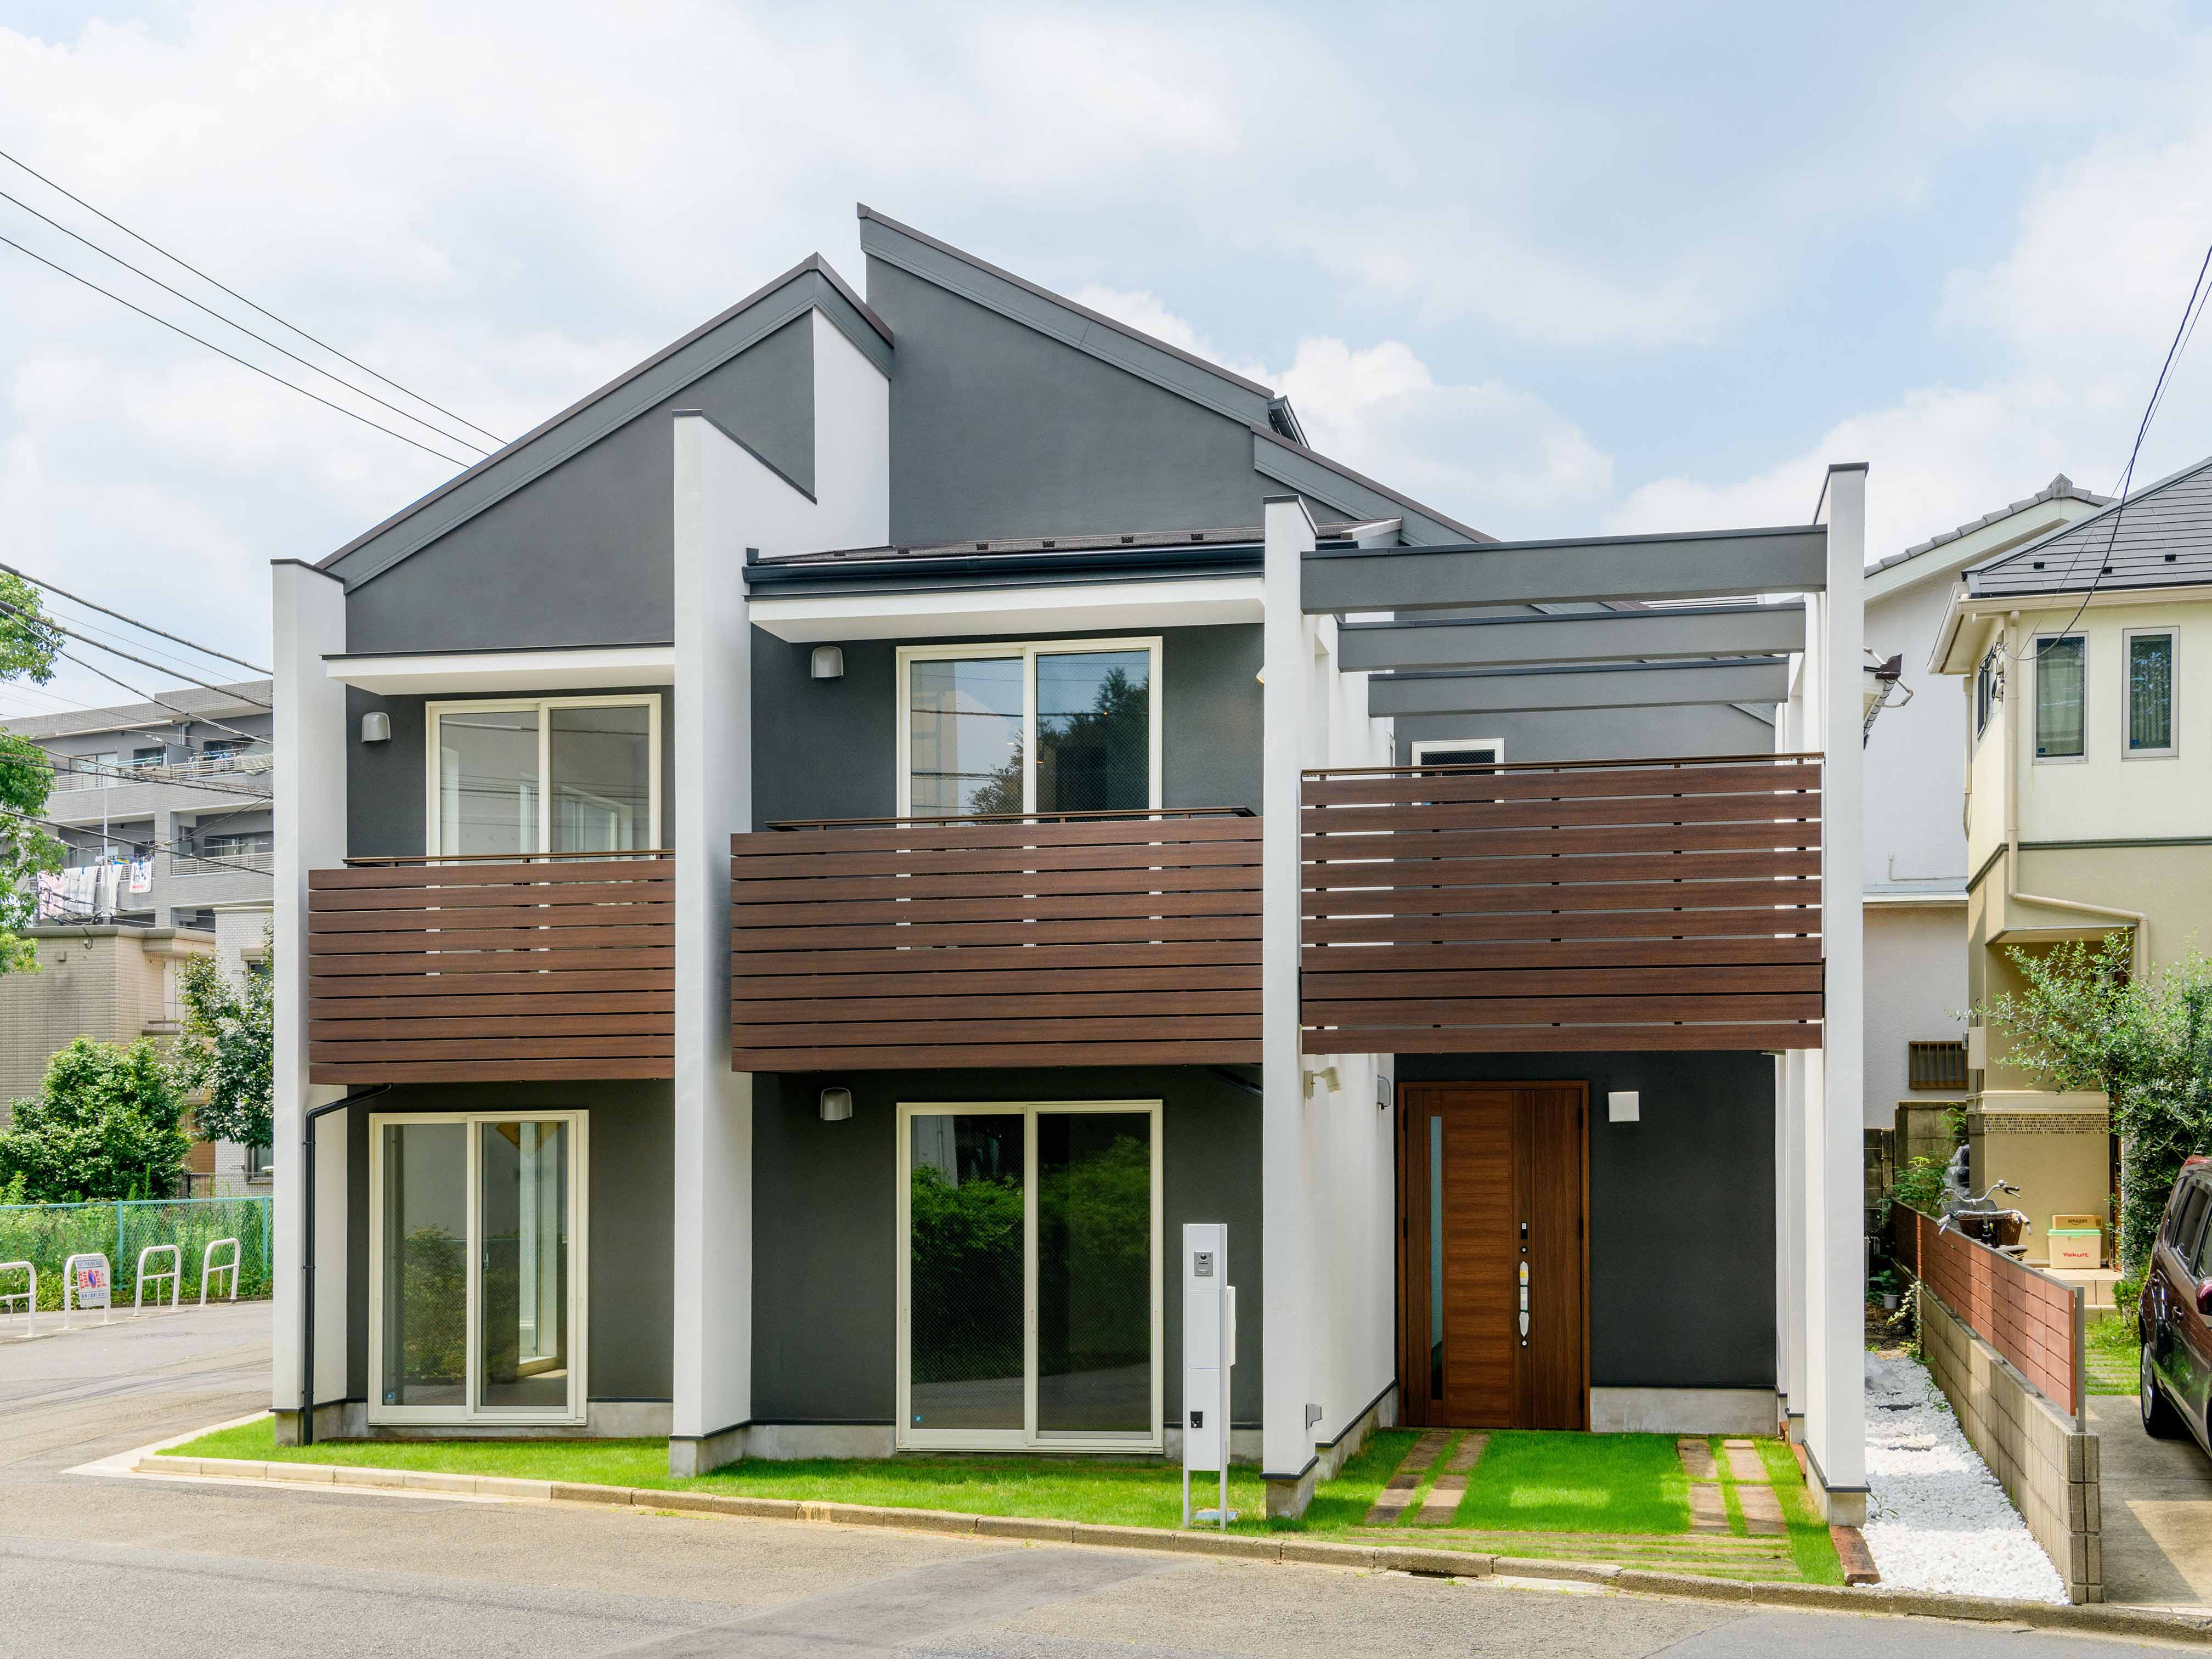 New-built detached house with coveted location